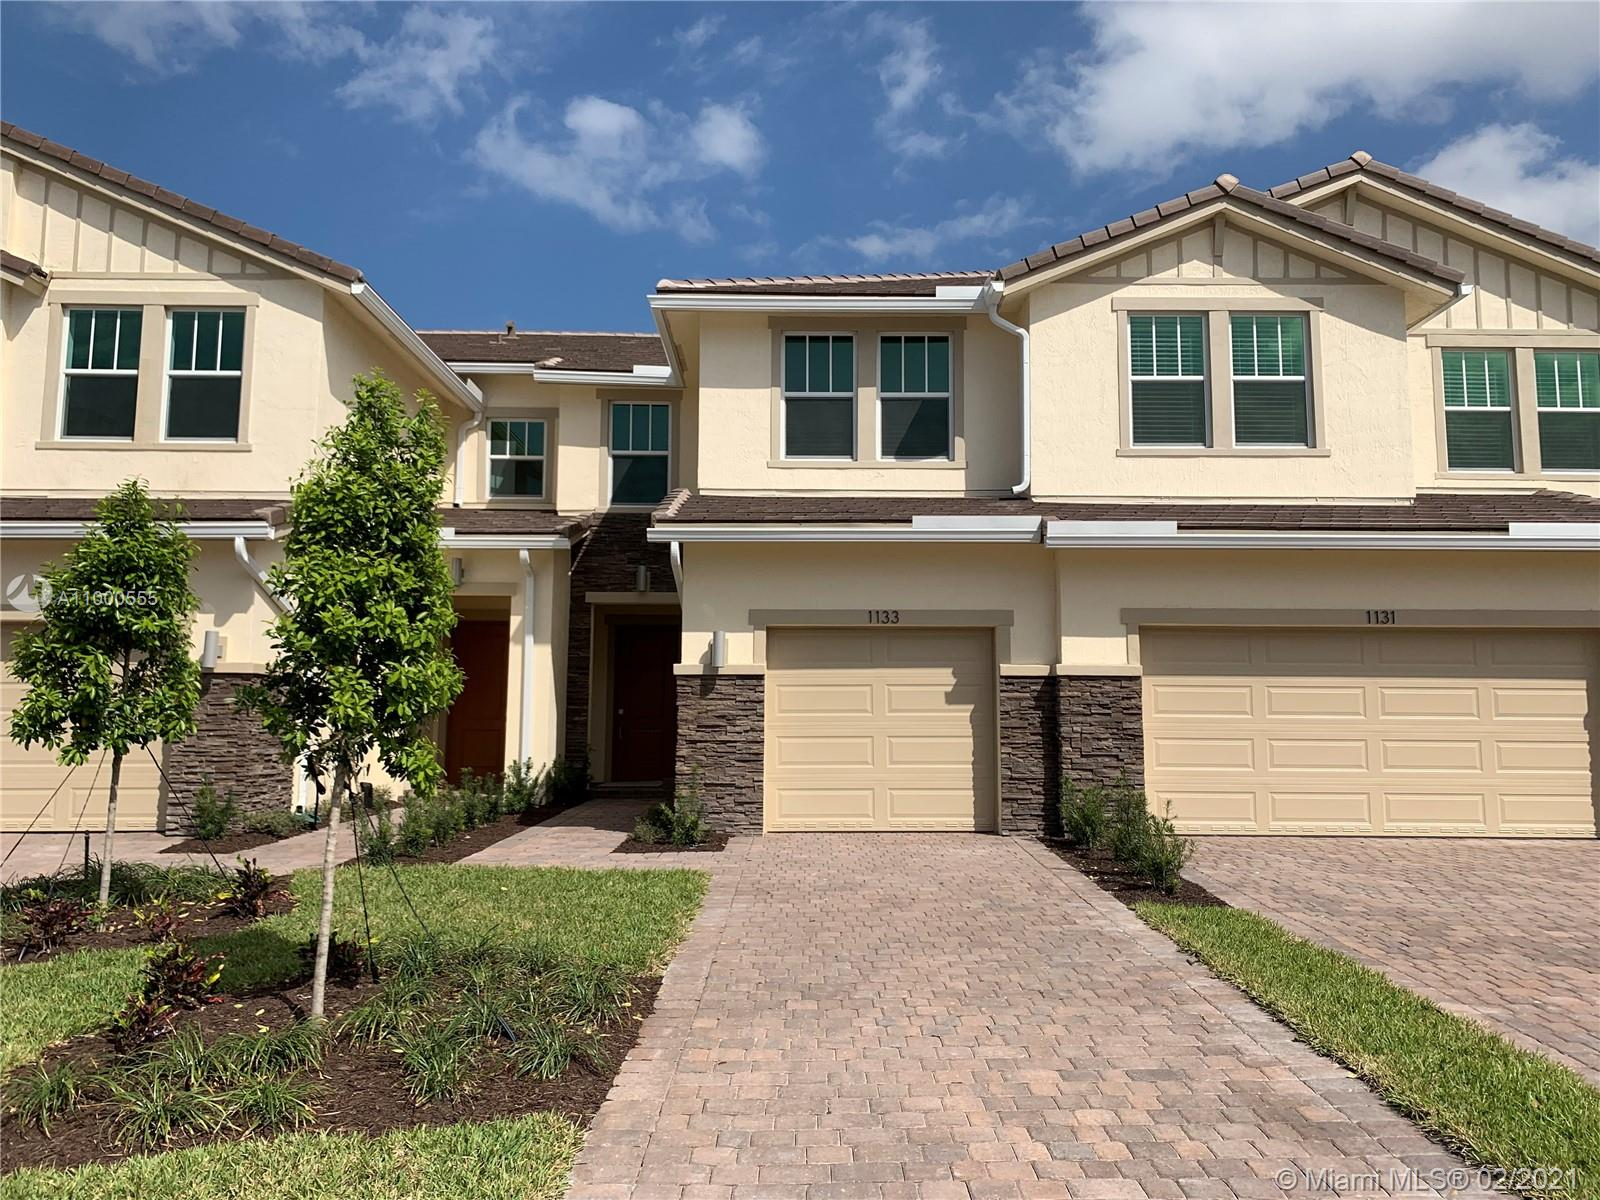 COMPLETED IN 2020, THIS SPACIOUS 3 BED, 2 1/2 BATH TOWNHOME IN VELEIROS AT CRYSTAL LAKE DEERFIELD BEACH IS WAITING FOR YOU! OPEN CONCEPT W/OVER 1600', DREAM KITCHEN W/NEW STAINLESS STEEL APPLIANCES, LARGE ISLAND W/PENDENT LIGHTS, QUARTZ COUNTERS.  TILE THROUGHOUT 1ST FL.  MASTER SUITE W/EXPANSIVE WALK IN CLOSET, DUAL SINKS, WALK IN SHOWER W/SEP WATER CLOSET. GENEROUS SECOND AND THIRD BEDRMS W/LOTS OF CLOSET SPACE. 2ND BATH W/DUAL SINKS, TUB/SHOWER COMBO. LAUNDRY W/LARGE CAPACITY W/D. CARPET UPSTAIRS. HURRICANE WINDOWS/DOORS. HOME BUILT W/SMART PRODUCTS SUCH AS RING DOORBELL, WI-FI SMART LOCK CONTROLLED BY ALEXA. 1CG. EXPANSIVE WATER VIEWS, OUTSIDE PATIO, LARGE YARD.  COMM POOL, FITNESS CENTER,CLUBHOUSE, TOT LOT COMING SOON!  NEW, NEW, NEW!!! LOW HOA-THIS ONE WON'T LAST–MAKE IT YOURS TODAY!